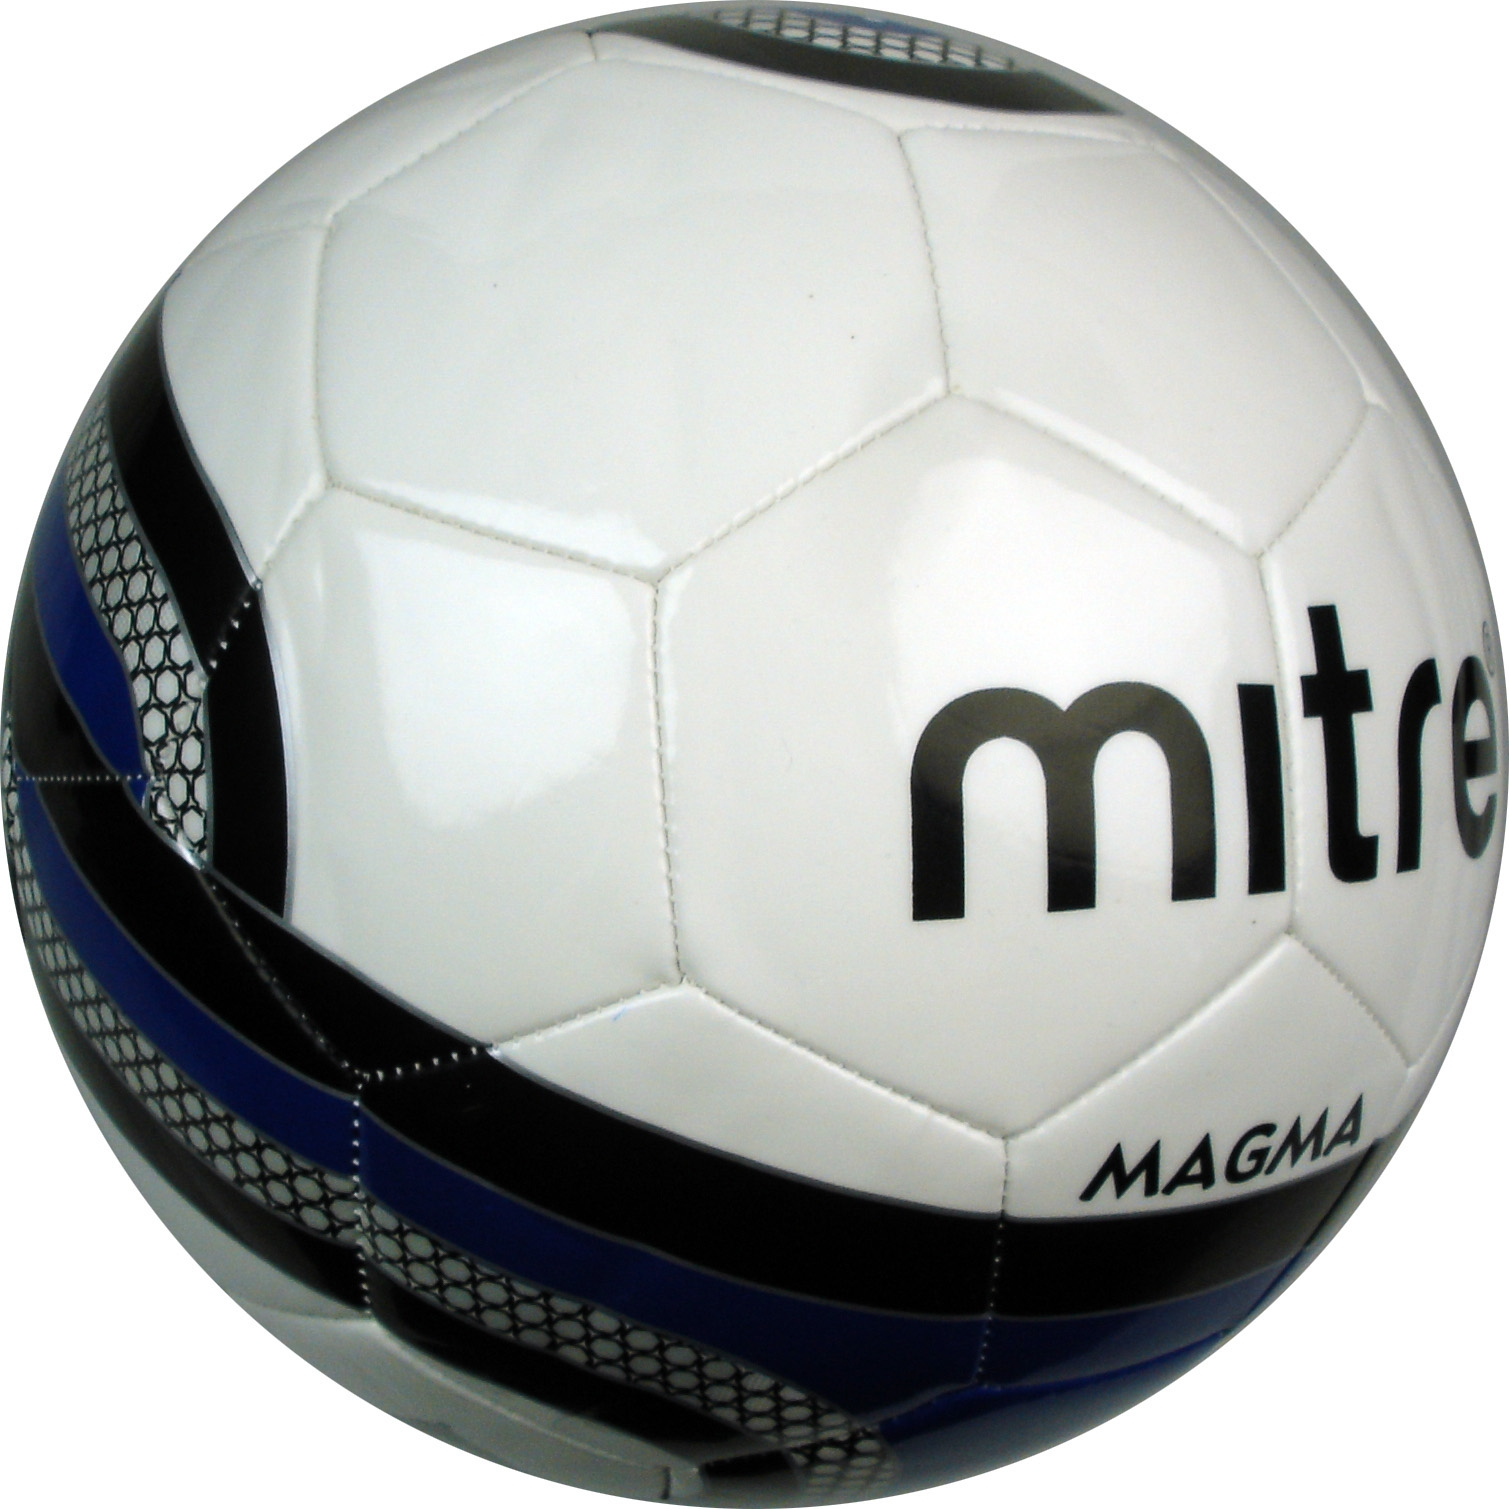 Brand-New-Mitre-Magma-32-Panel-Training-Size-3-4-5-White-black-navy-Ball